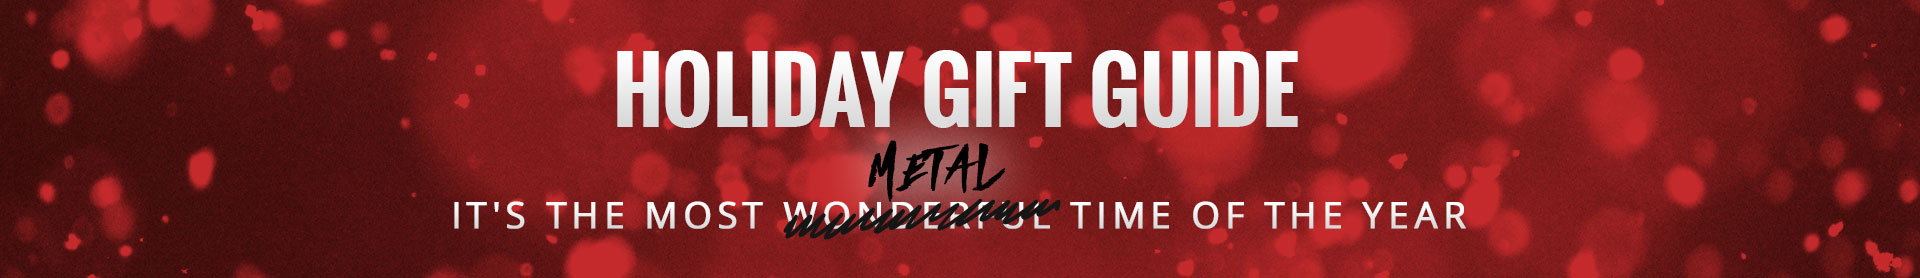 Holiday Gift Guide | It's the most metal time of year